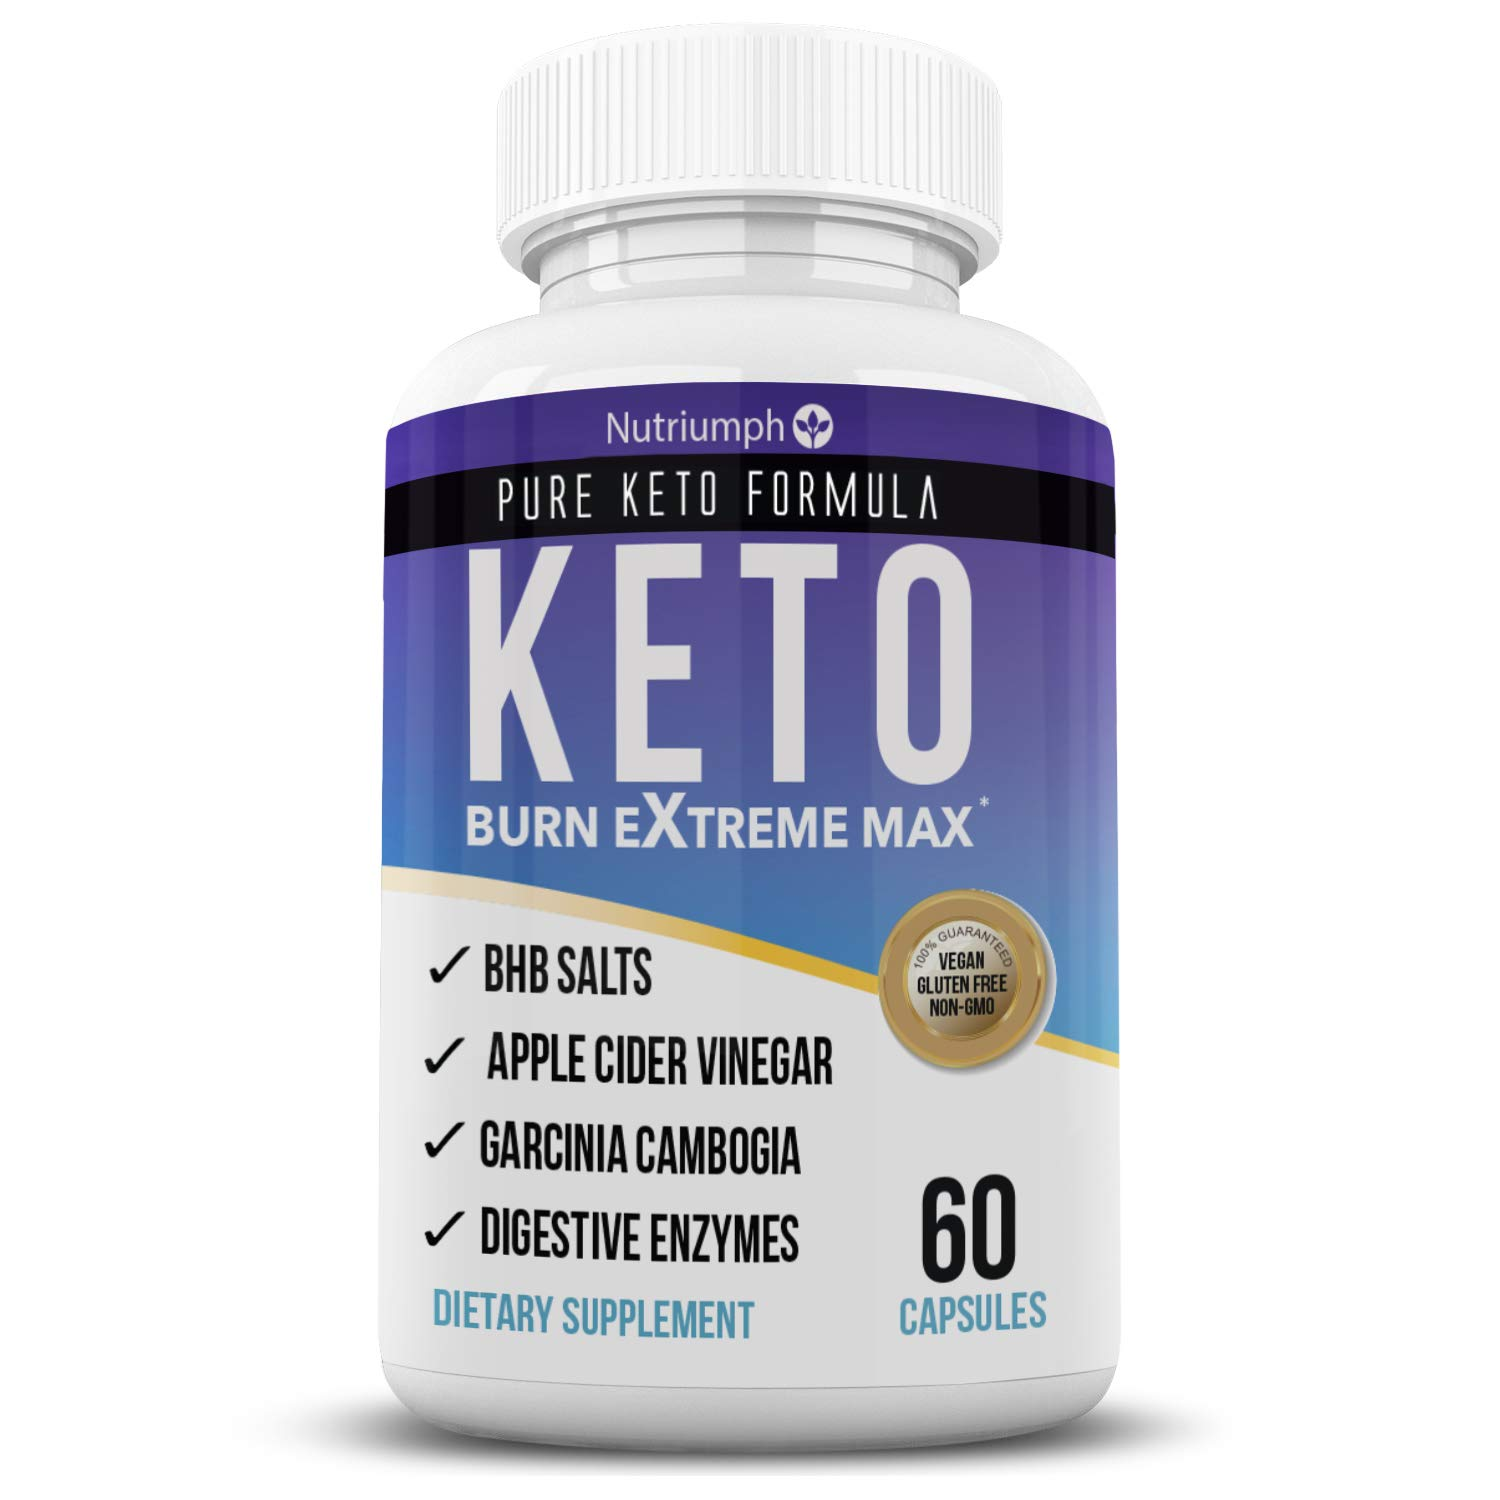 Keto Burn Extreme Max Fat Burner Diet Pills- Ketogenic Weight Loss for Women and Men- Ketosis Supplement with BHB Salts & Apple Cider Vinegar- 30 Day Supply by Nutriumph